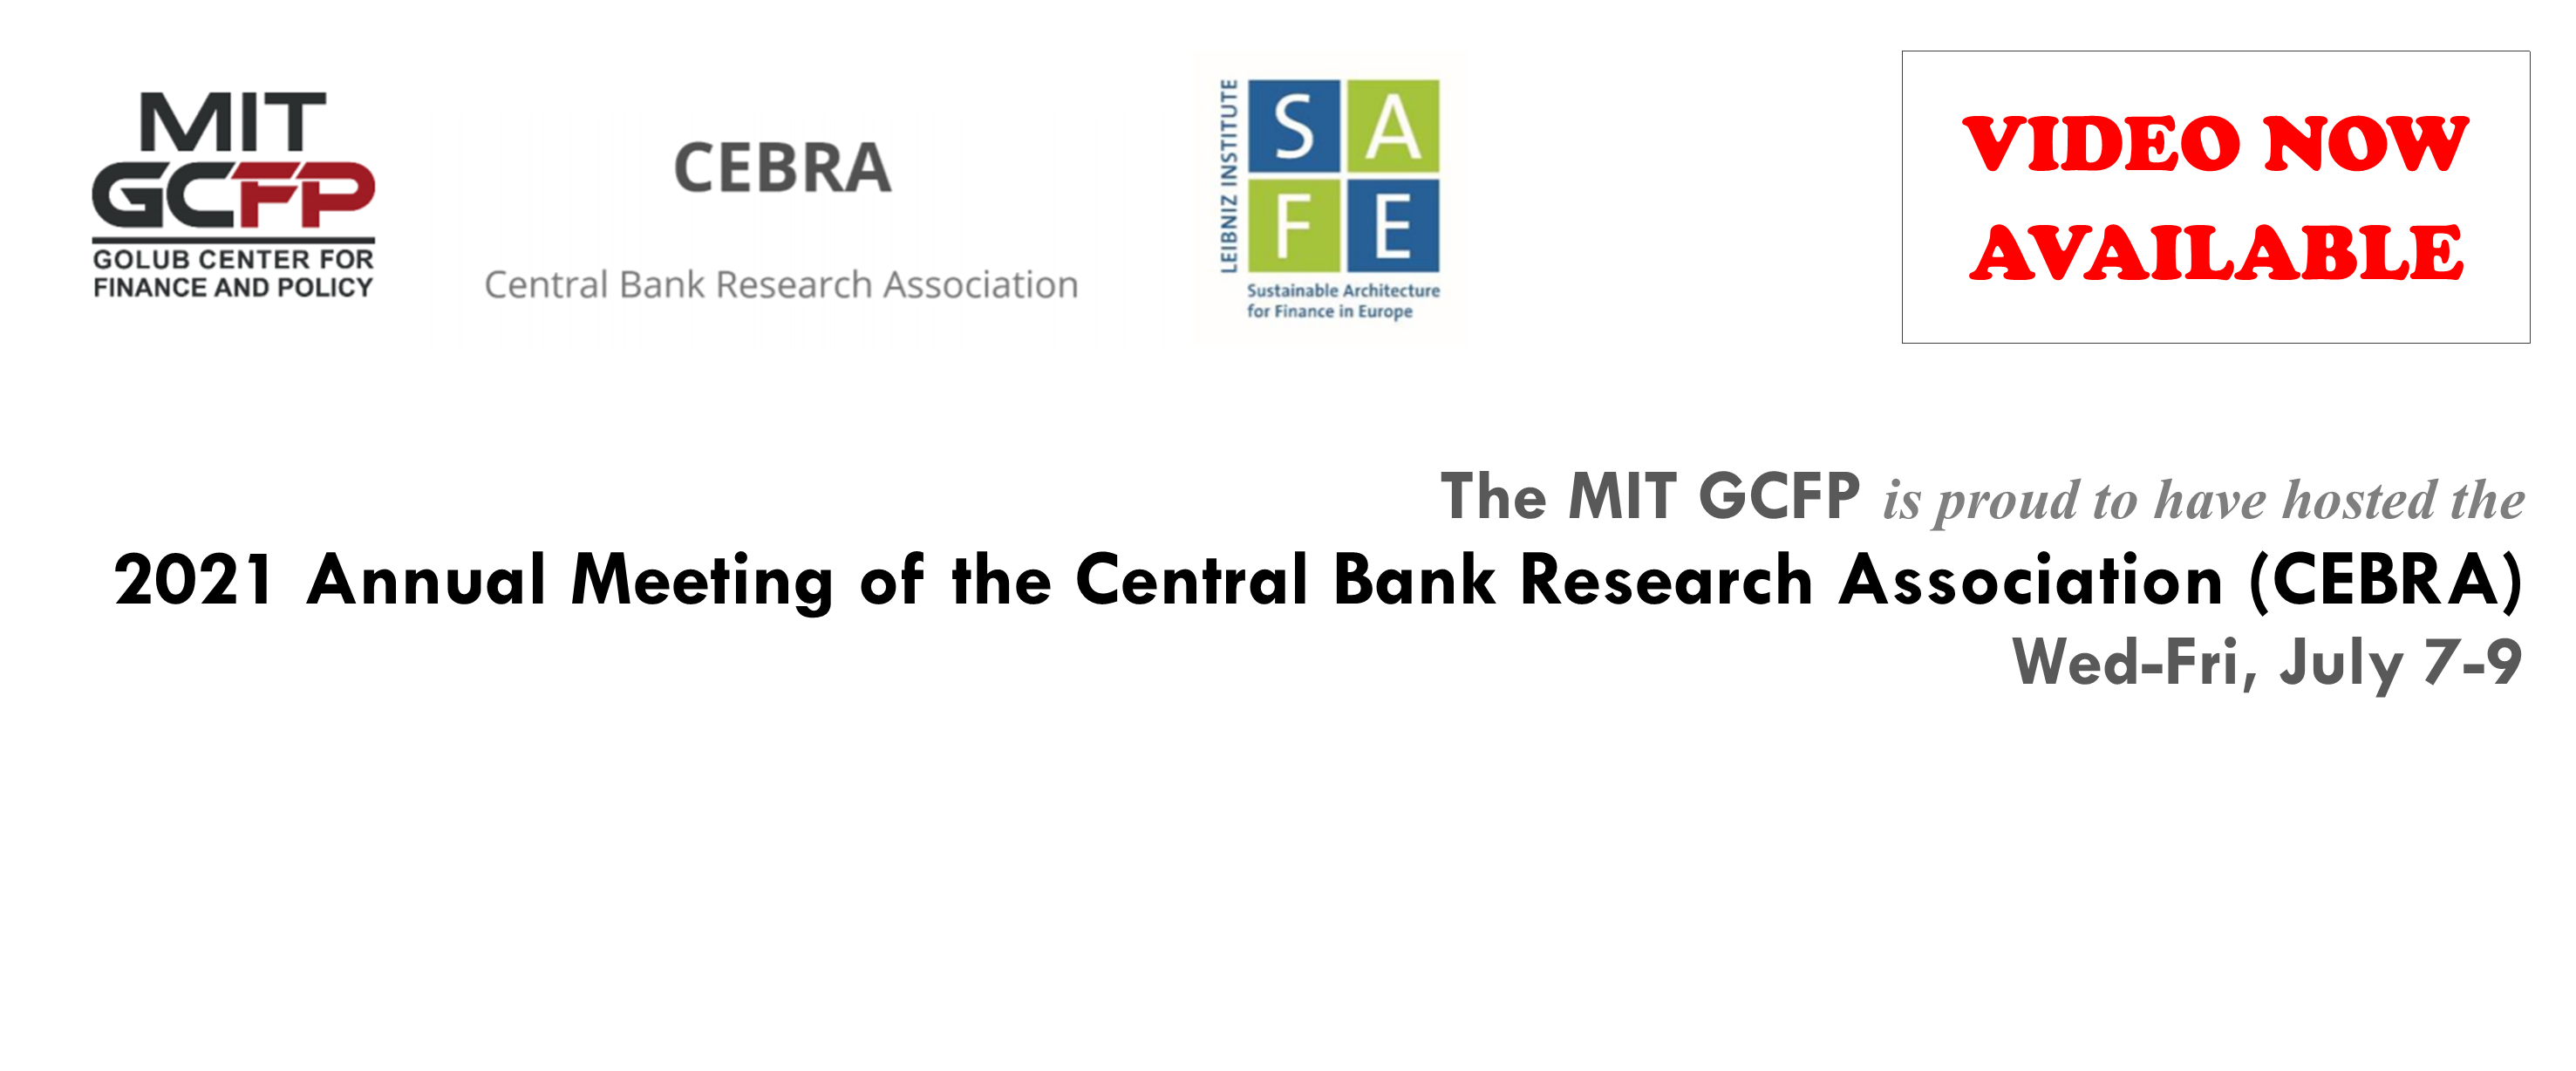 Select videos are now available from the CEBRA 2021 Annual Meeting (July 7-9)